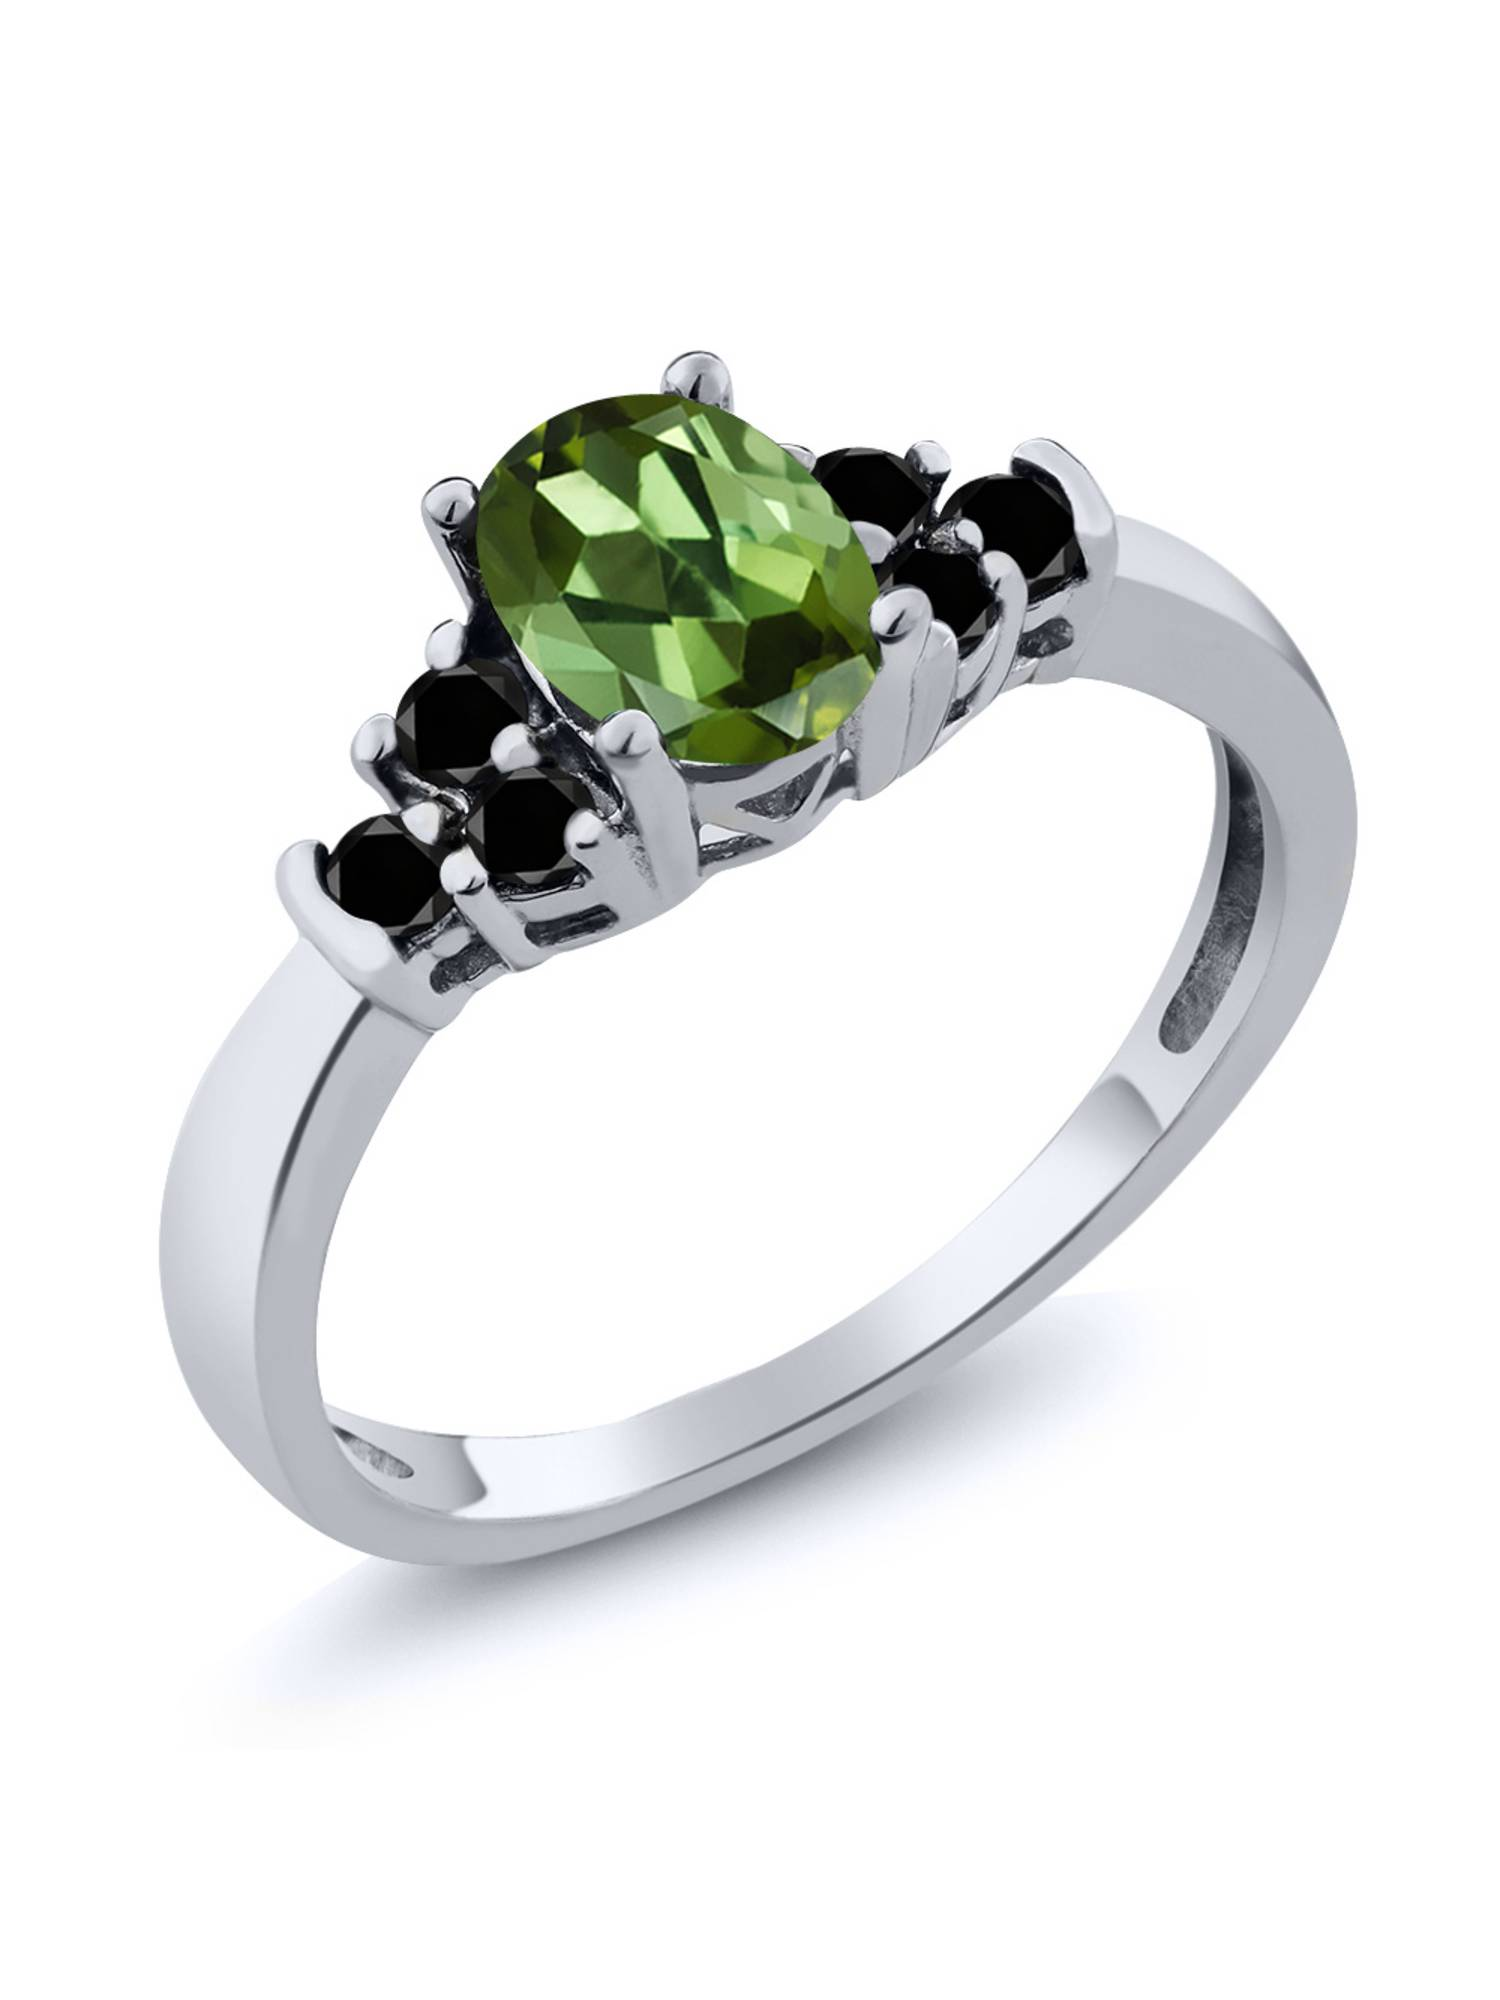 0.60 Ct Oval Green Tourmaline Black Diamond 925 Sterling Silver Ring by